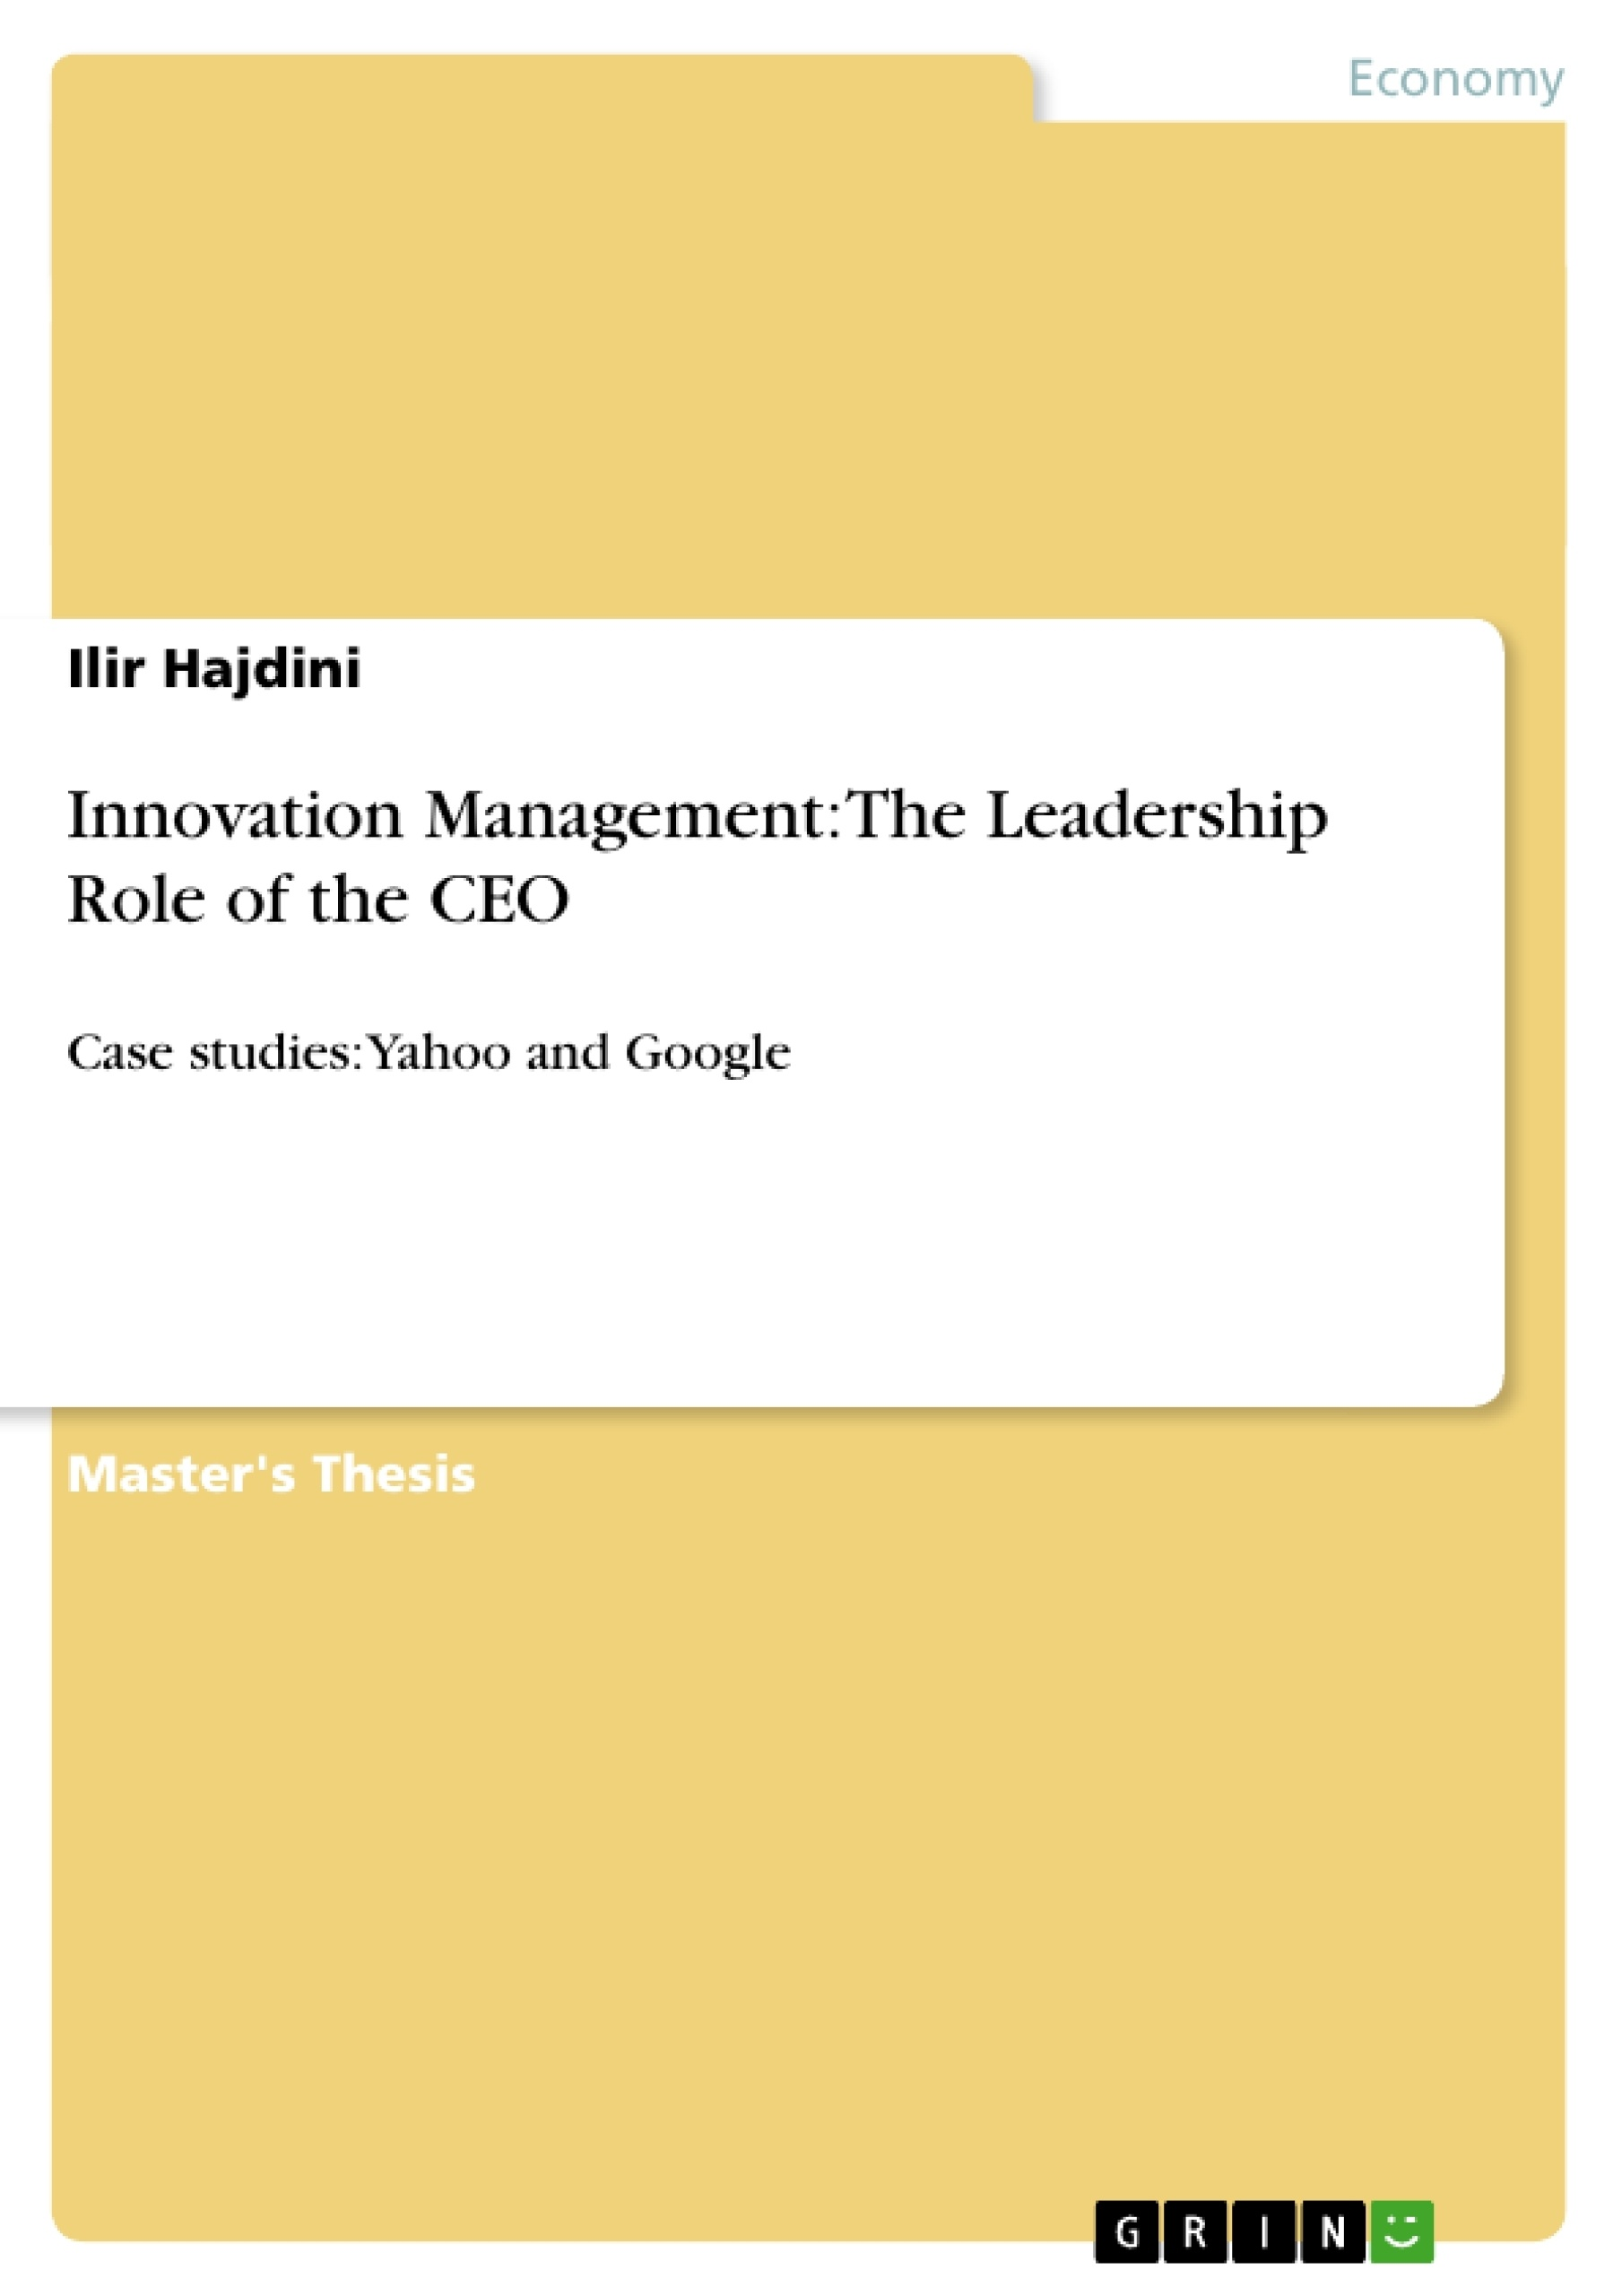 GRIN - Innovation Management: The Leadership Role of the CEO